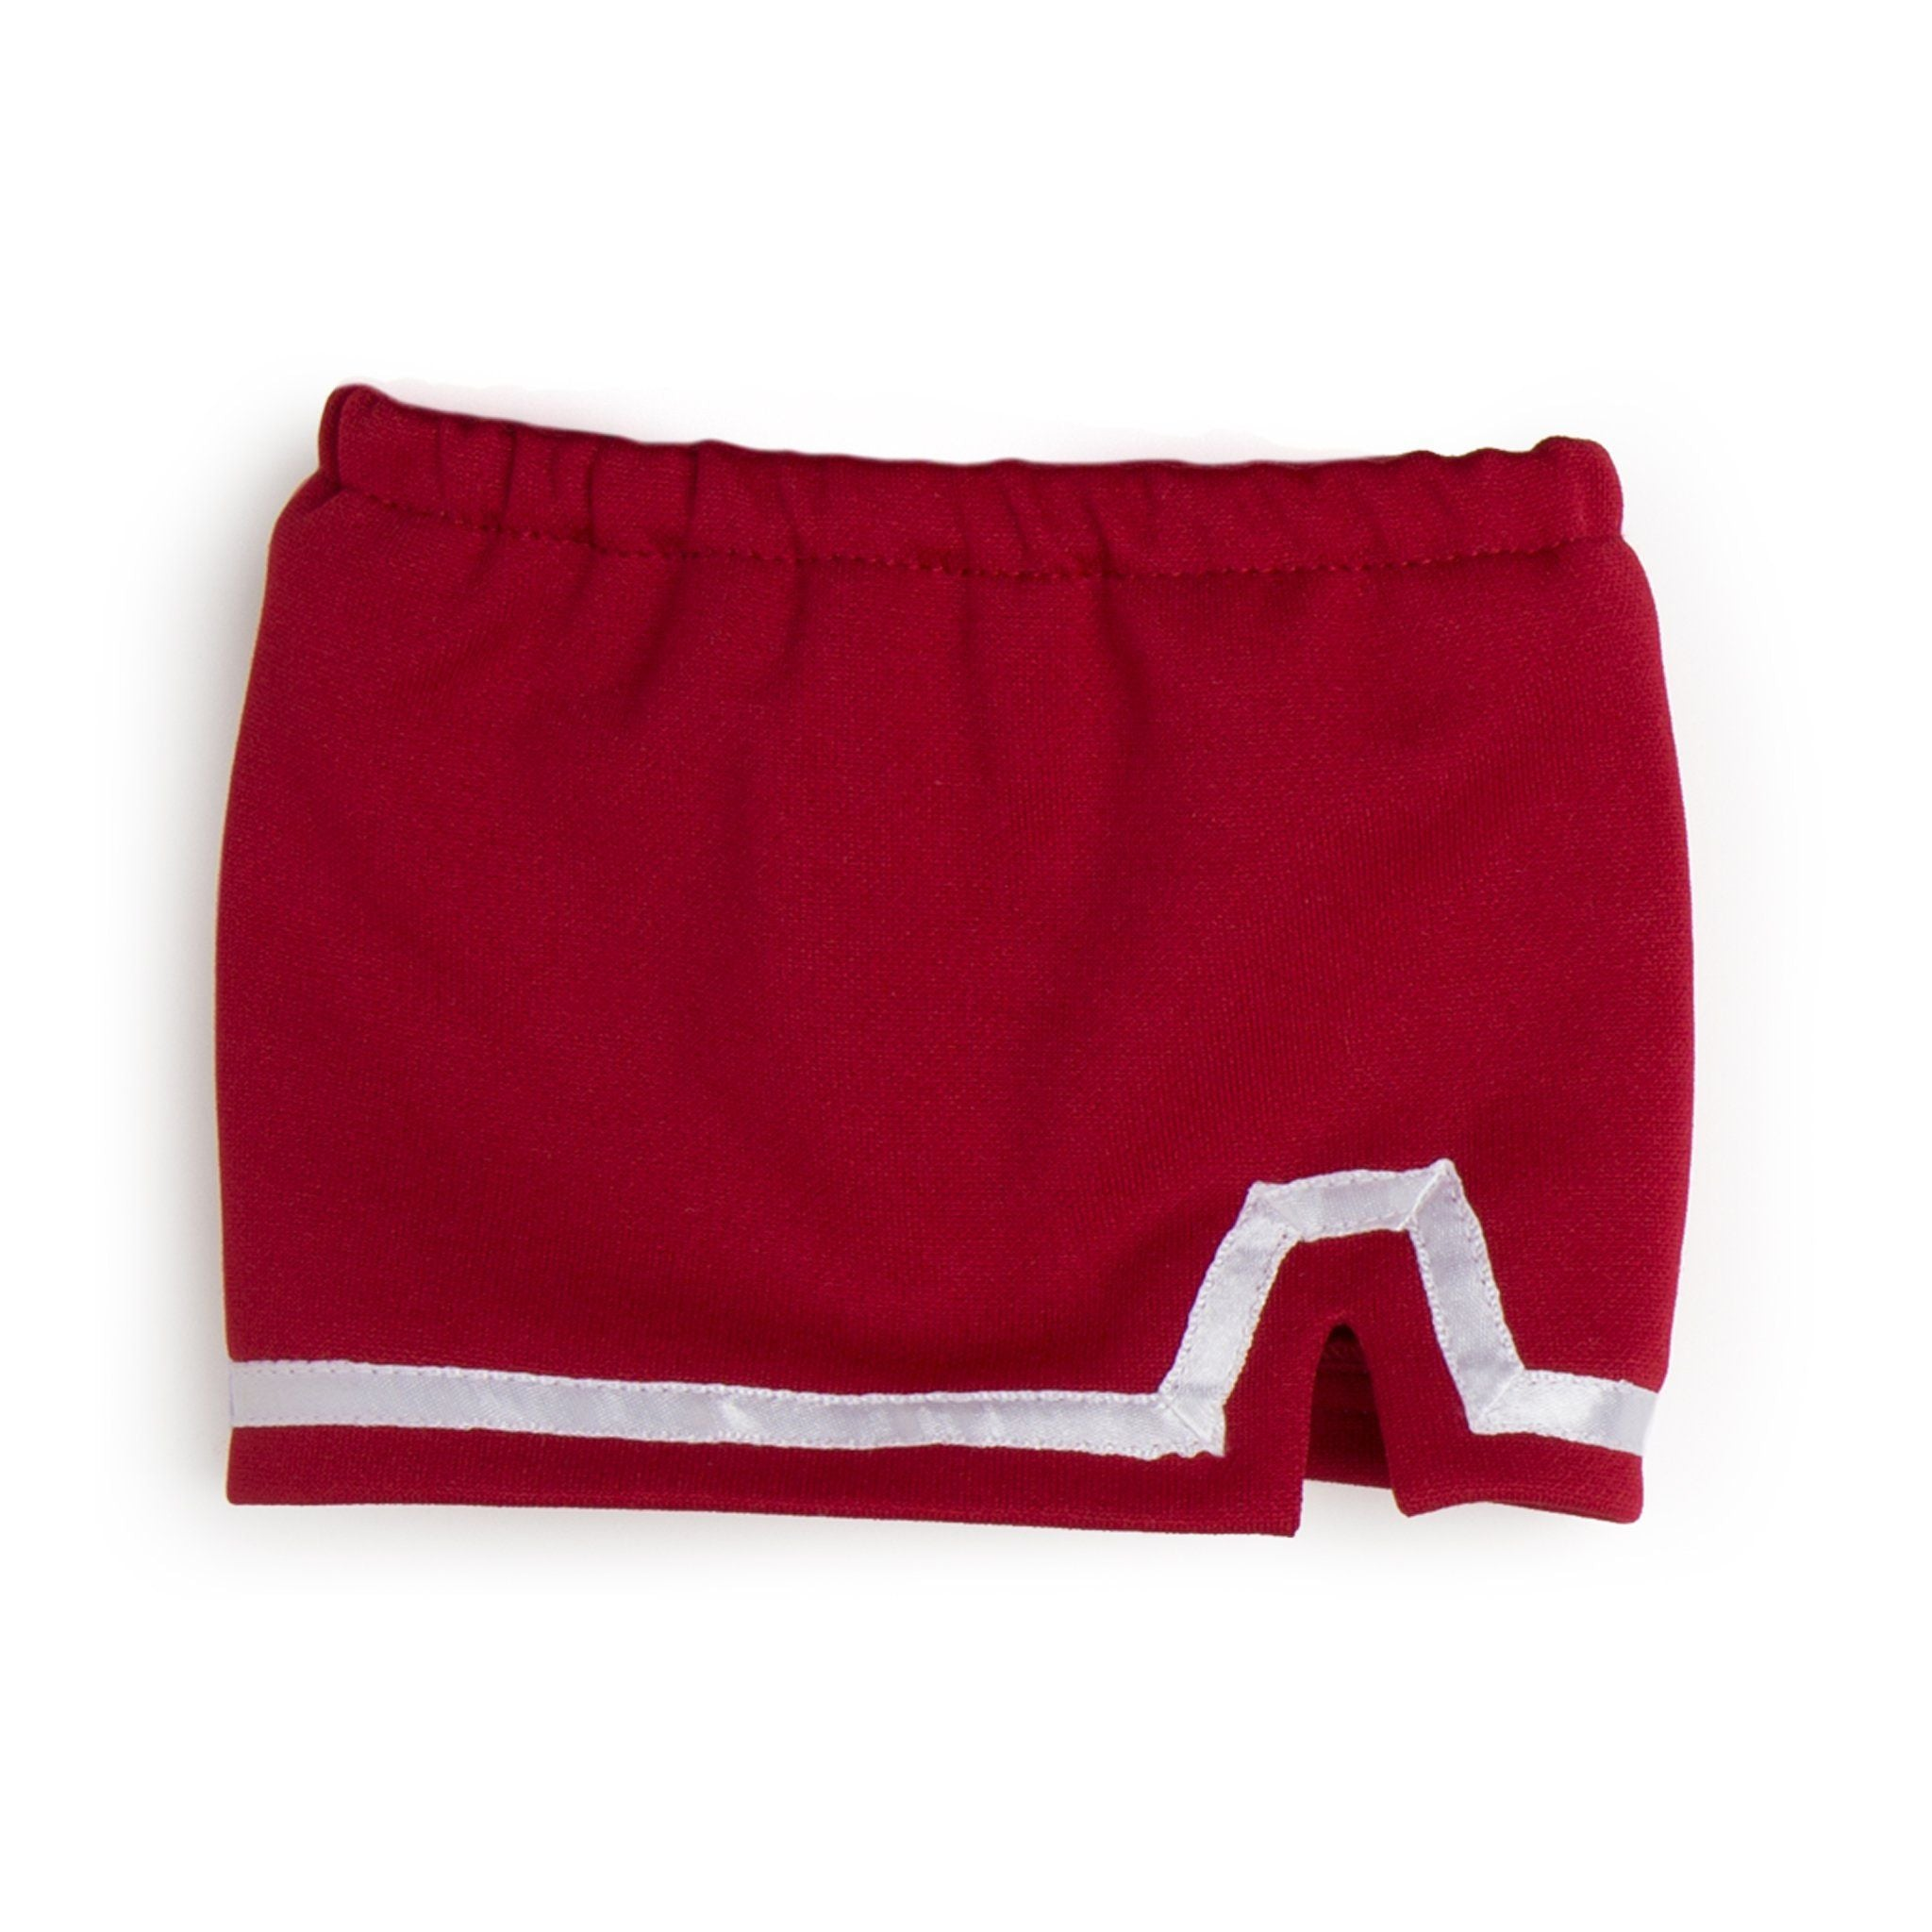 Pom pom power red and white skort fits all 18 inch dolls.